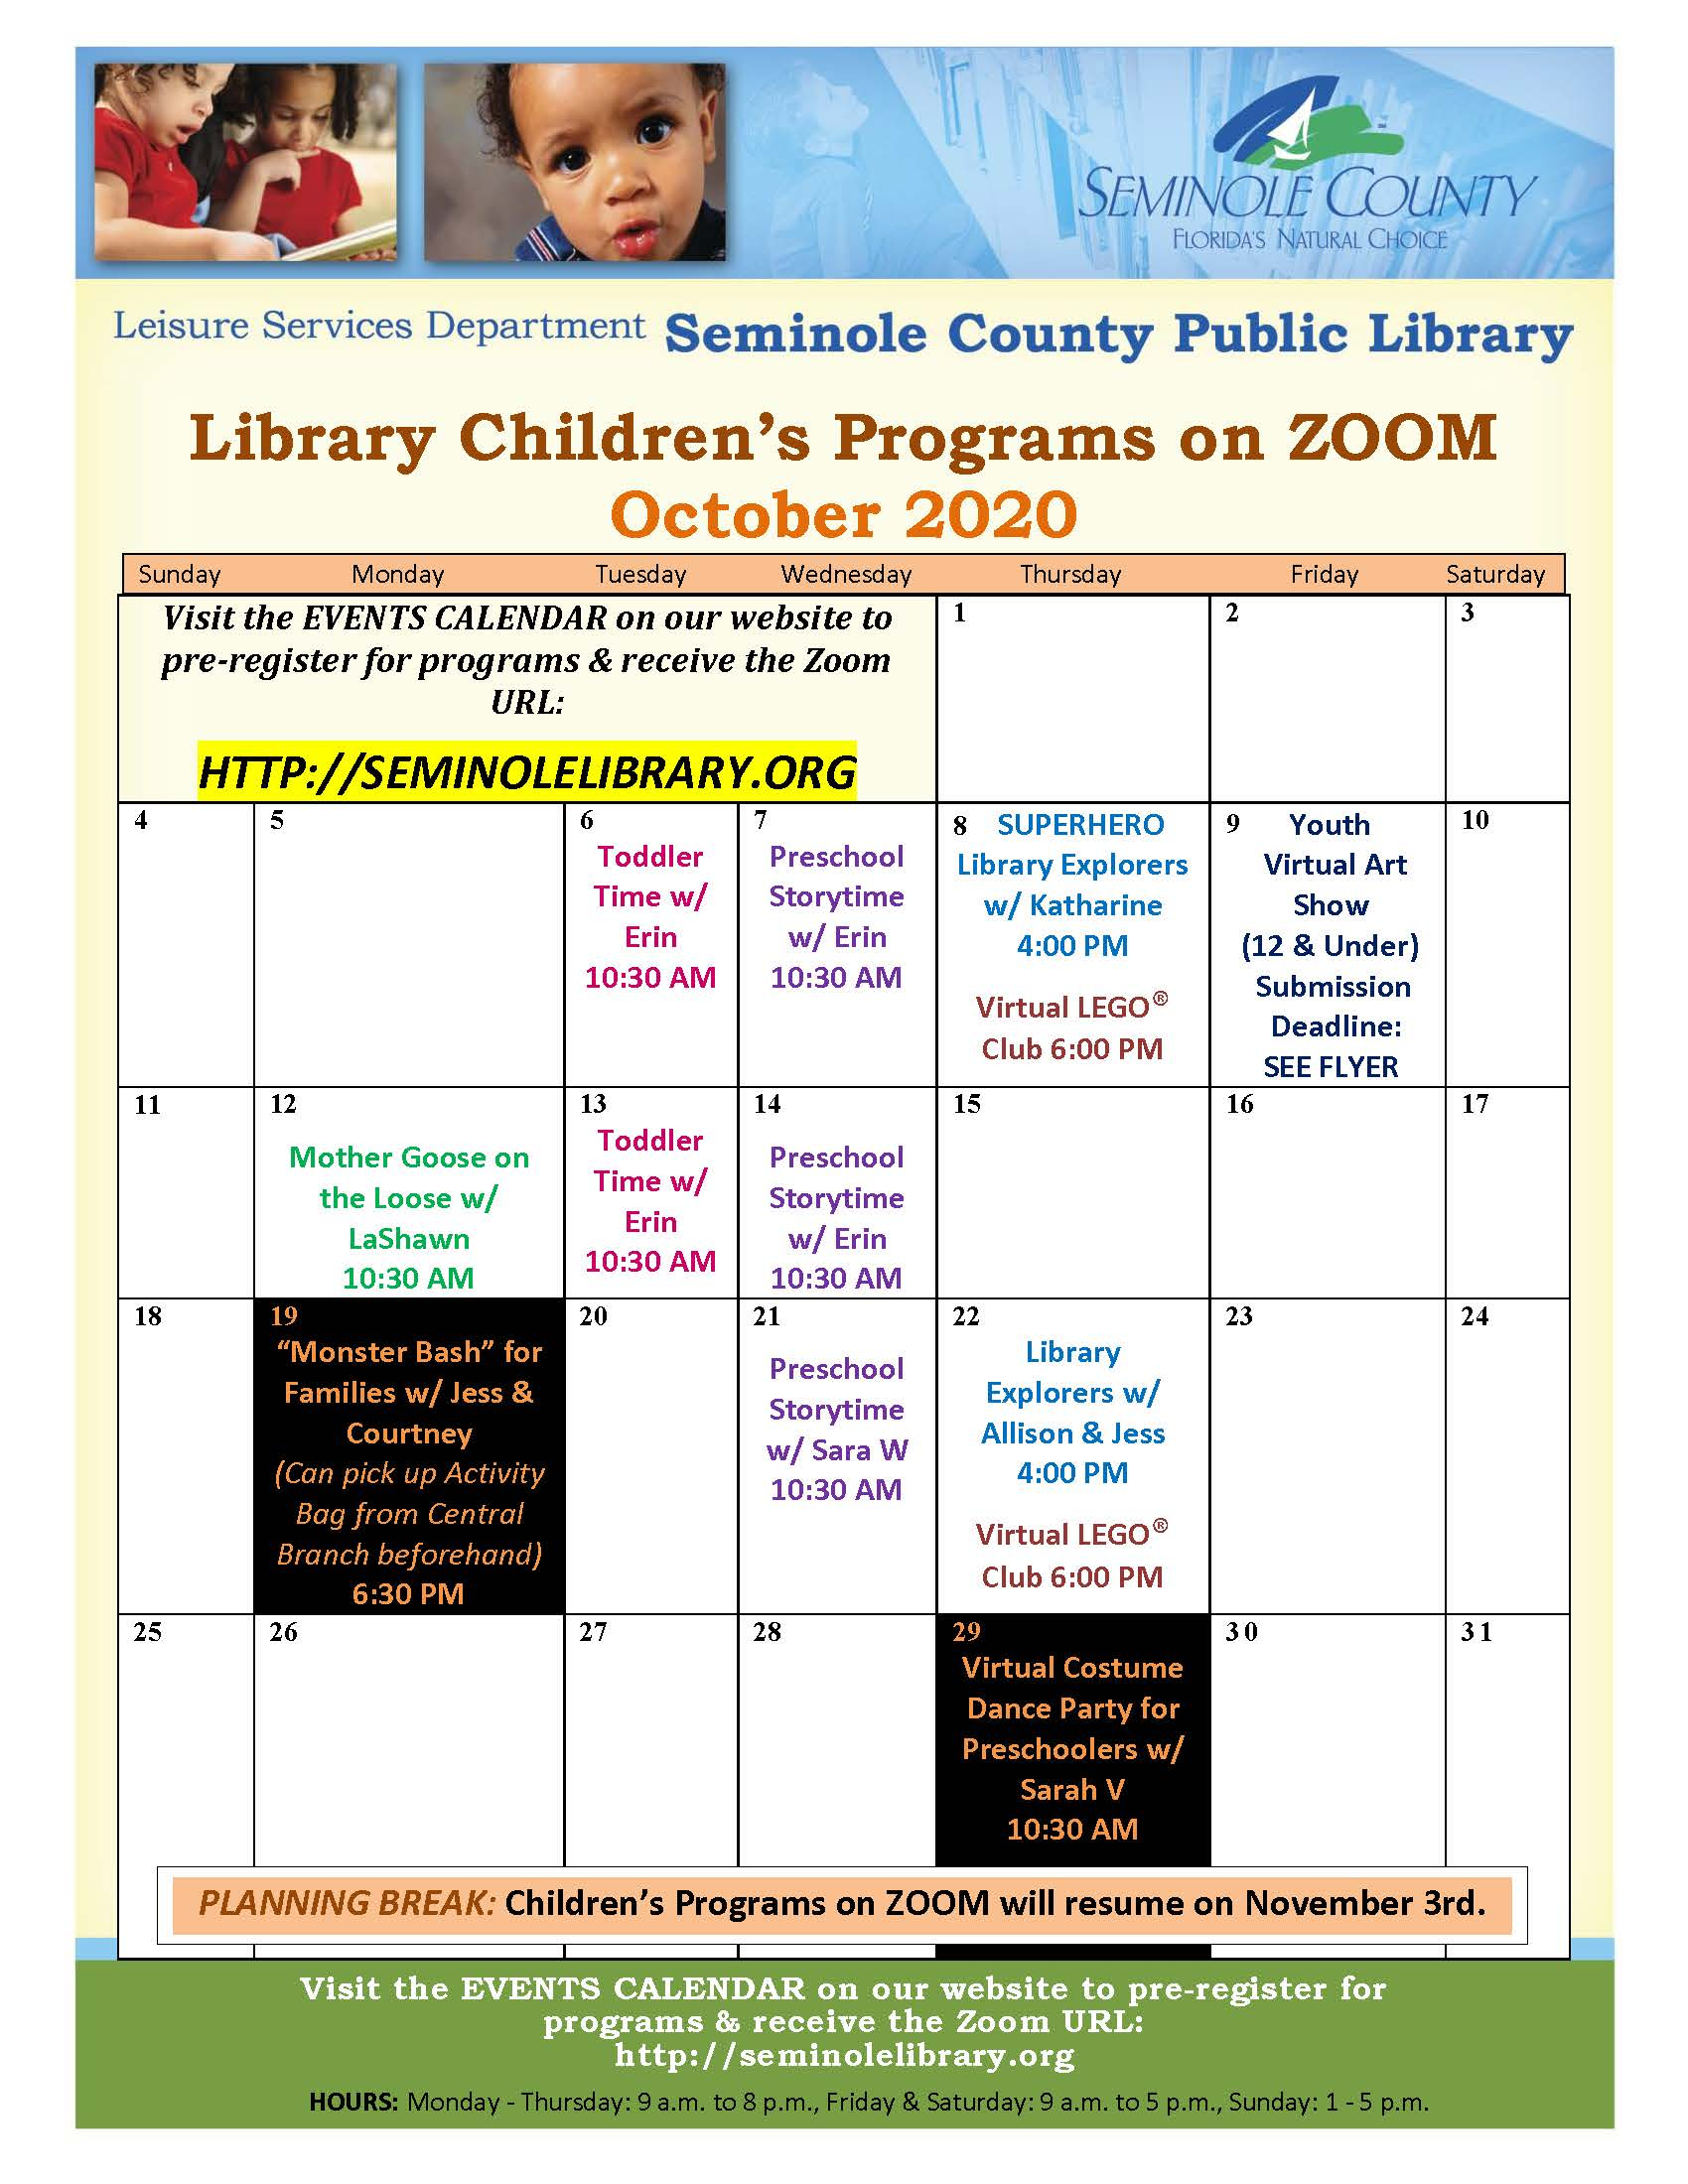 October 2020 - Library Children's Programs on Zoom